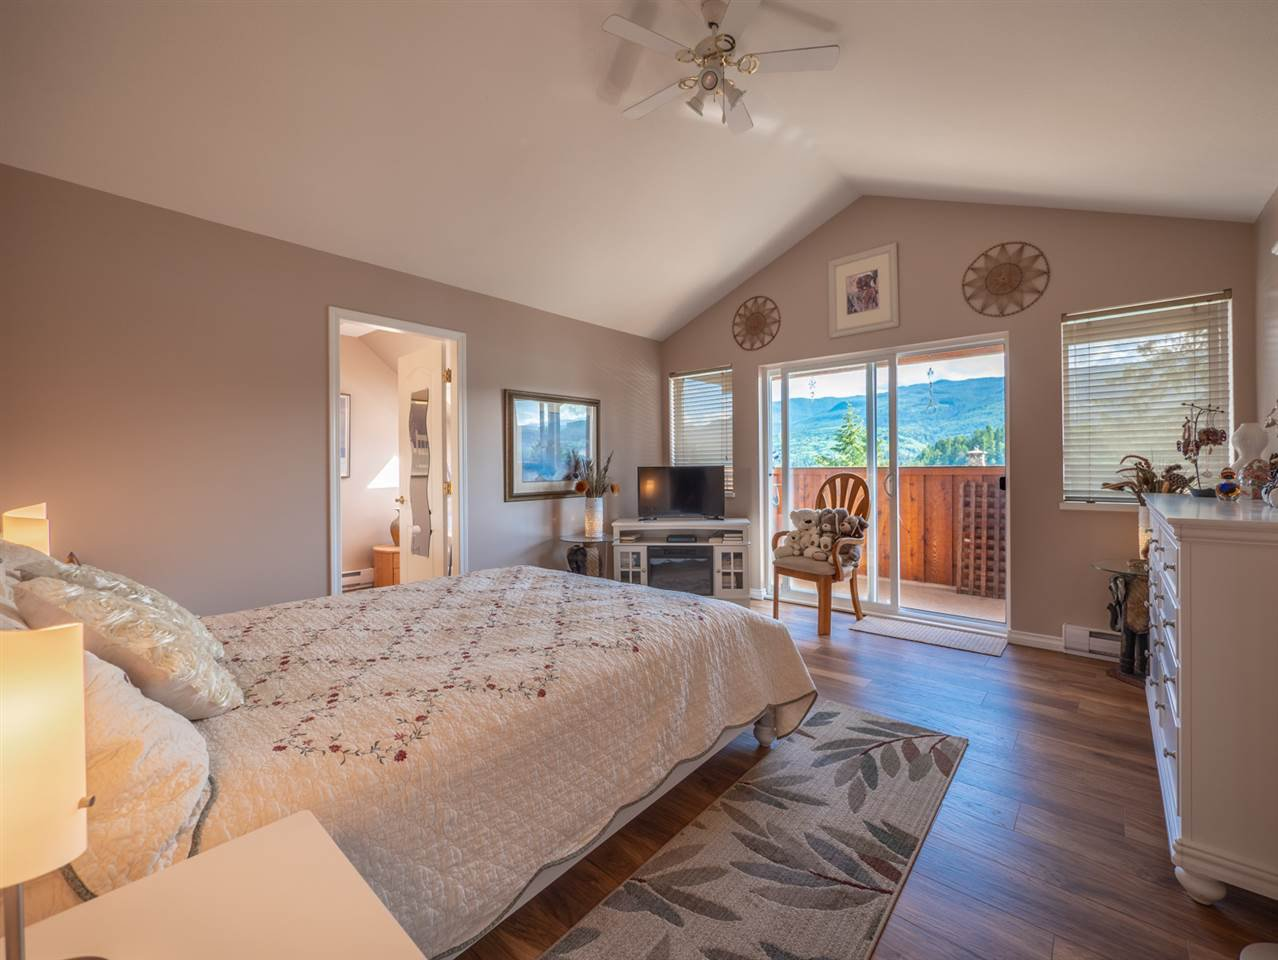 """Photo 6: Photos: 6148 POISE ISLAND Drive in Sechelt: Sechelt District House for sale in """"POISE ISLAND"""" (Sunshine Coast)  : MLS®# R2426642"""